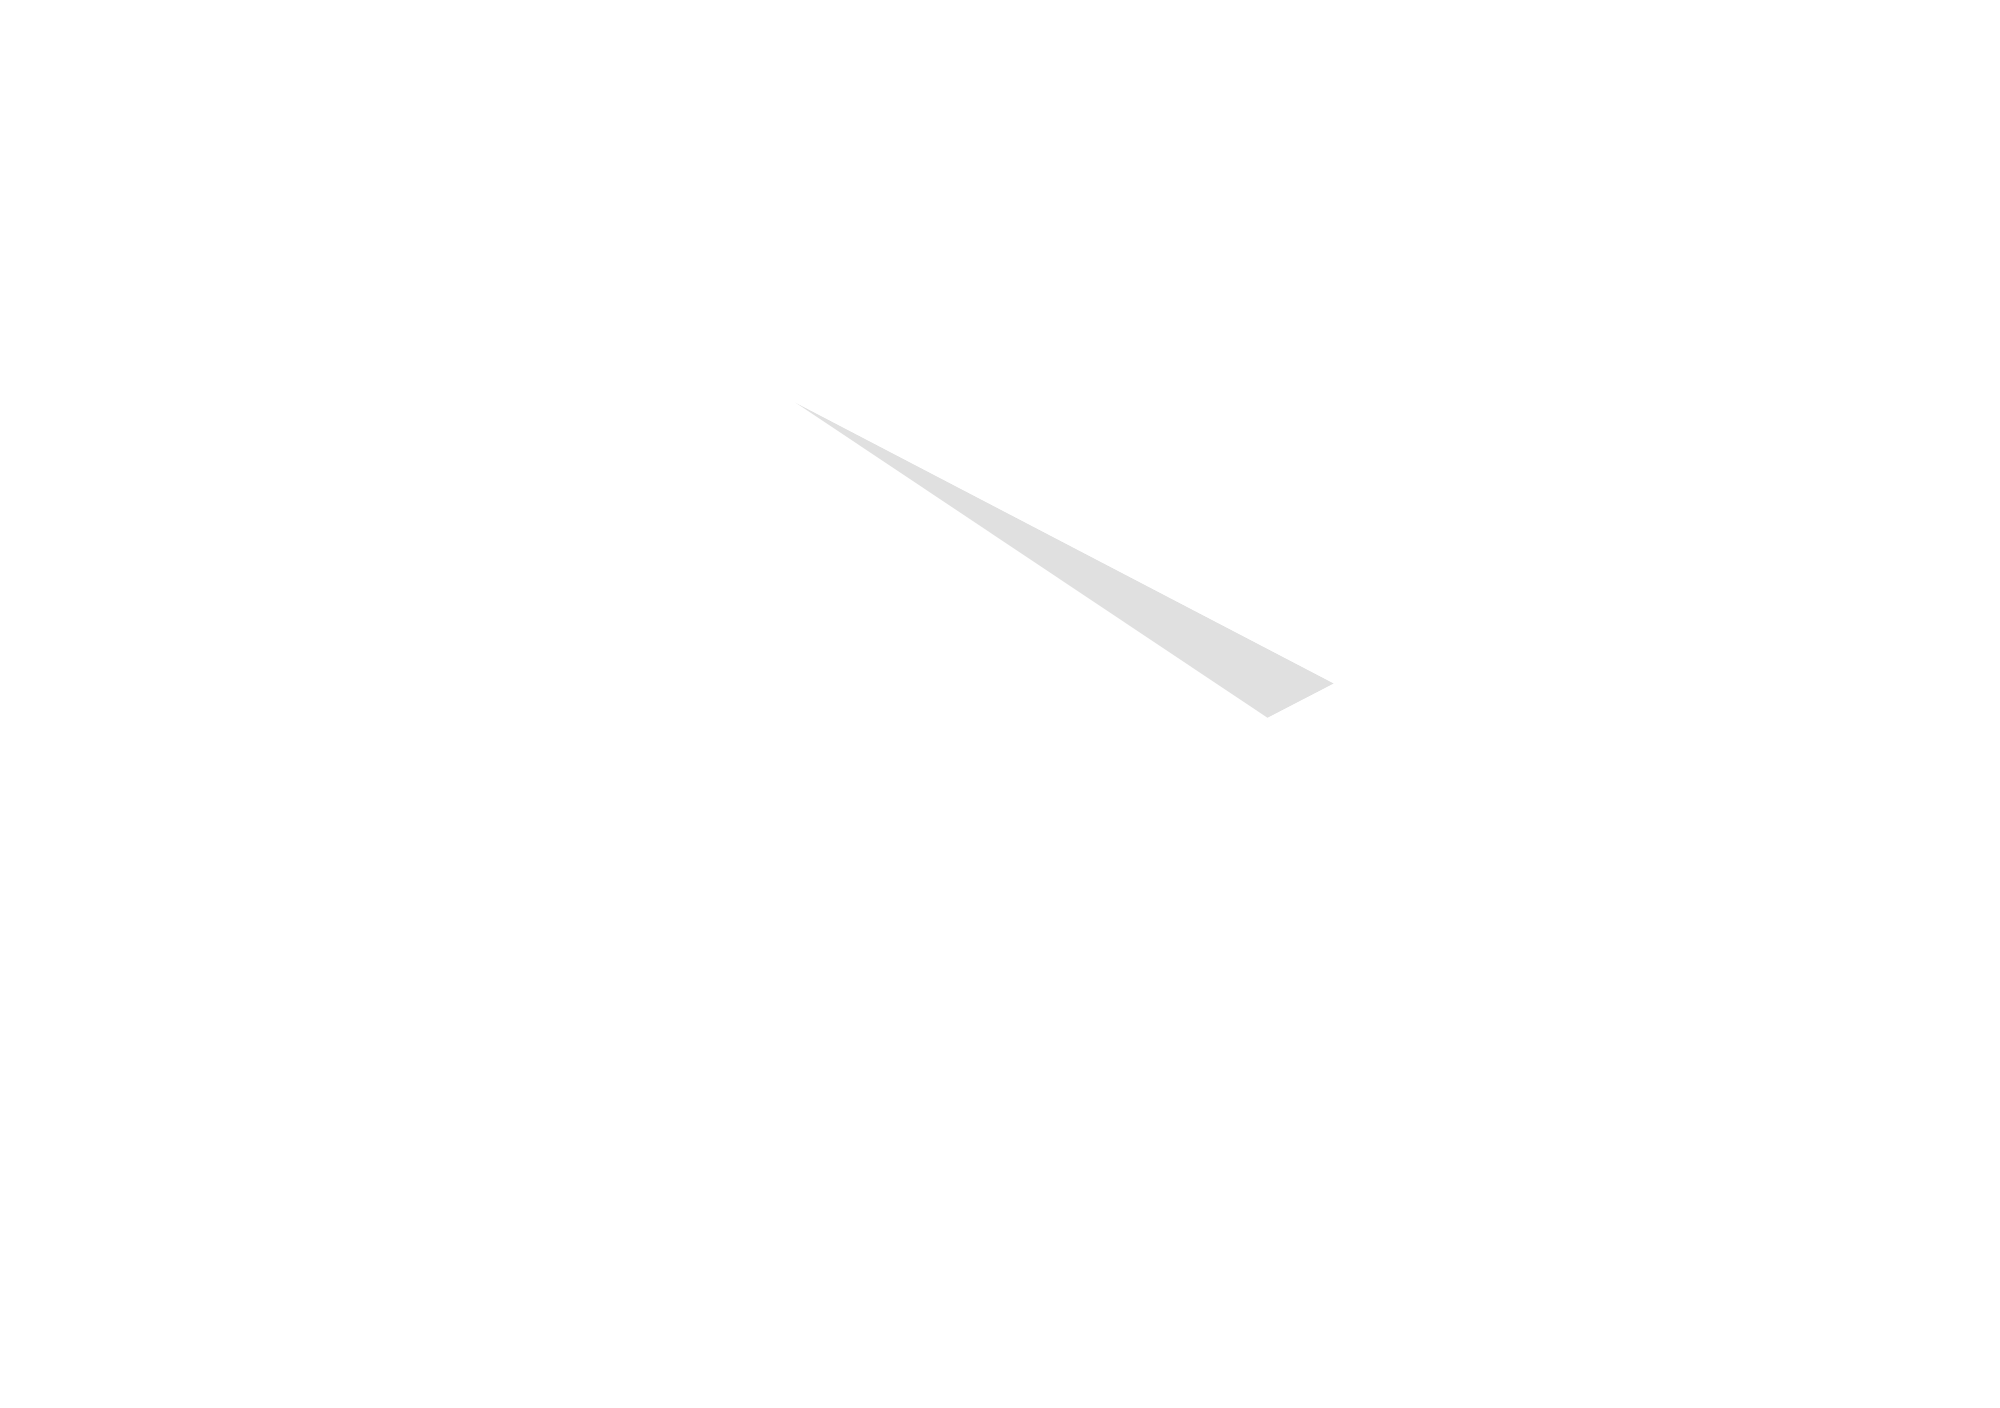 Youtube logo white png. File play buttom light